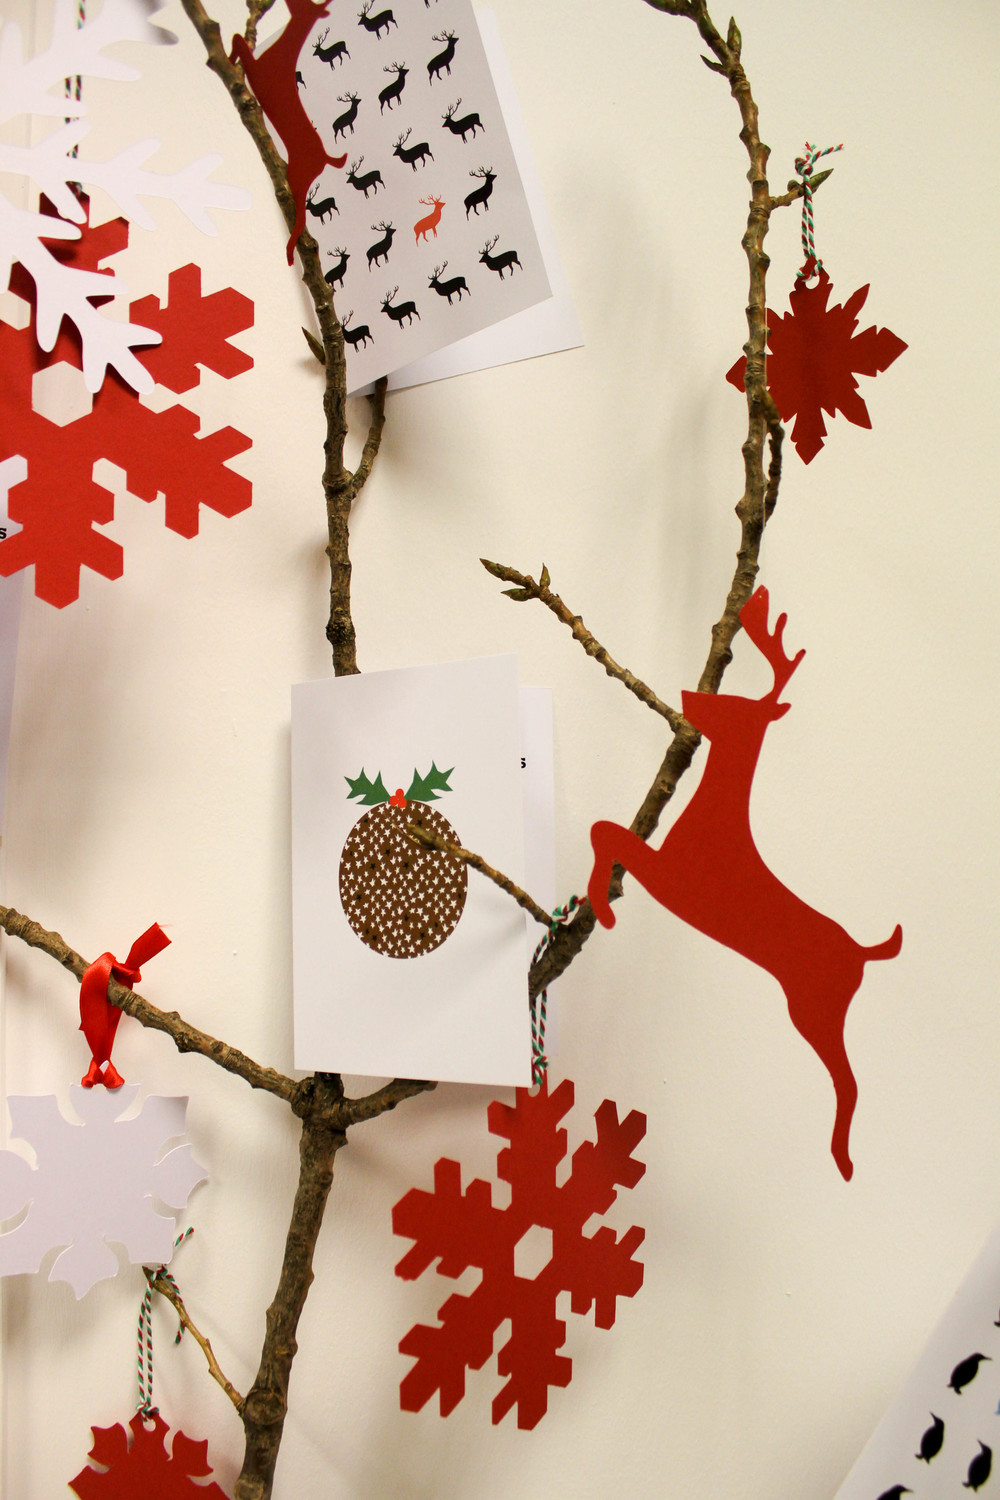 Handmade high quality stock card decorations produced by Artlink staff, artists and volunteers on our Cricut with card donated generously by D & G Smith in Hull.